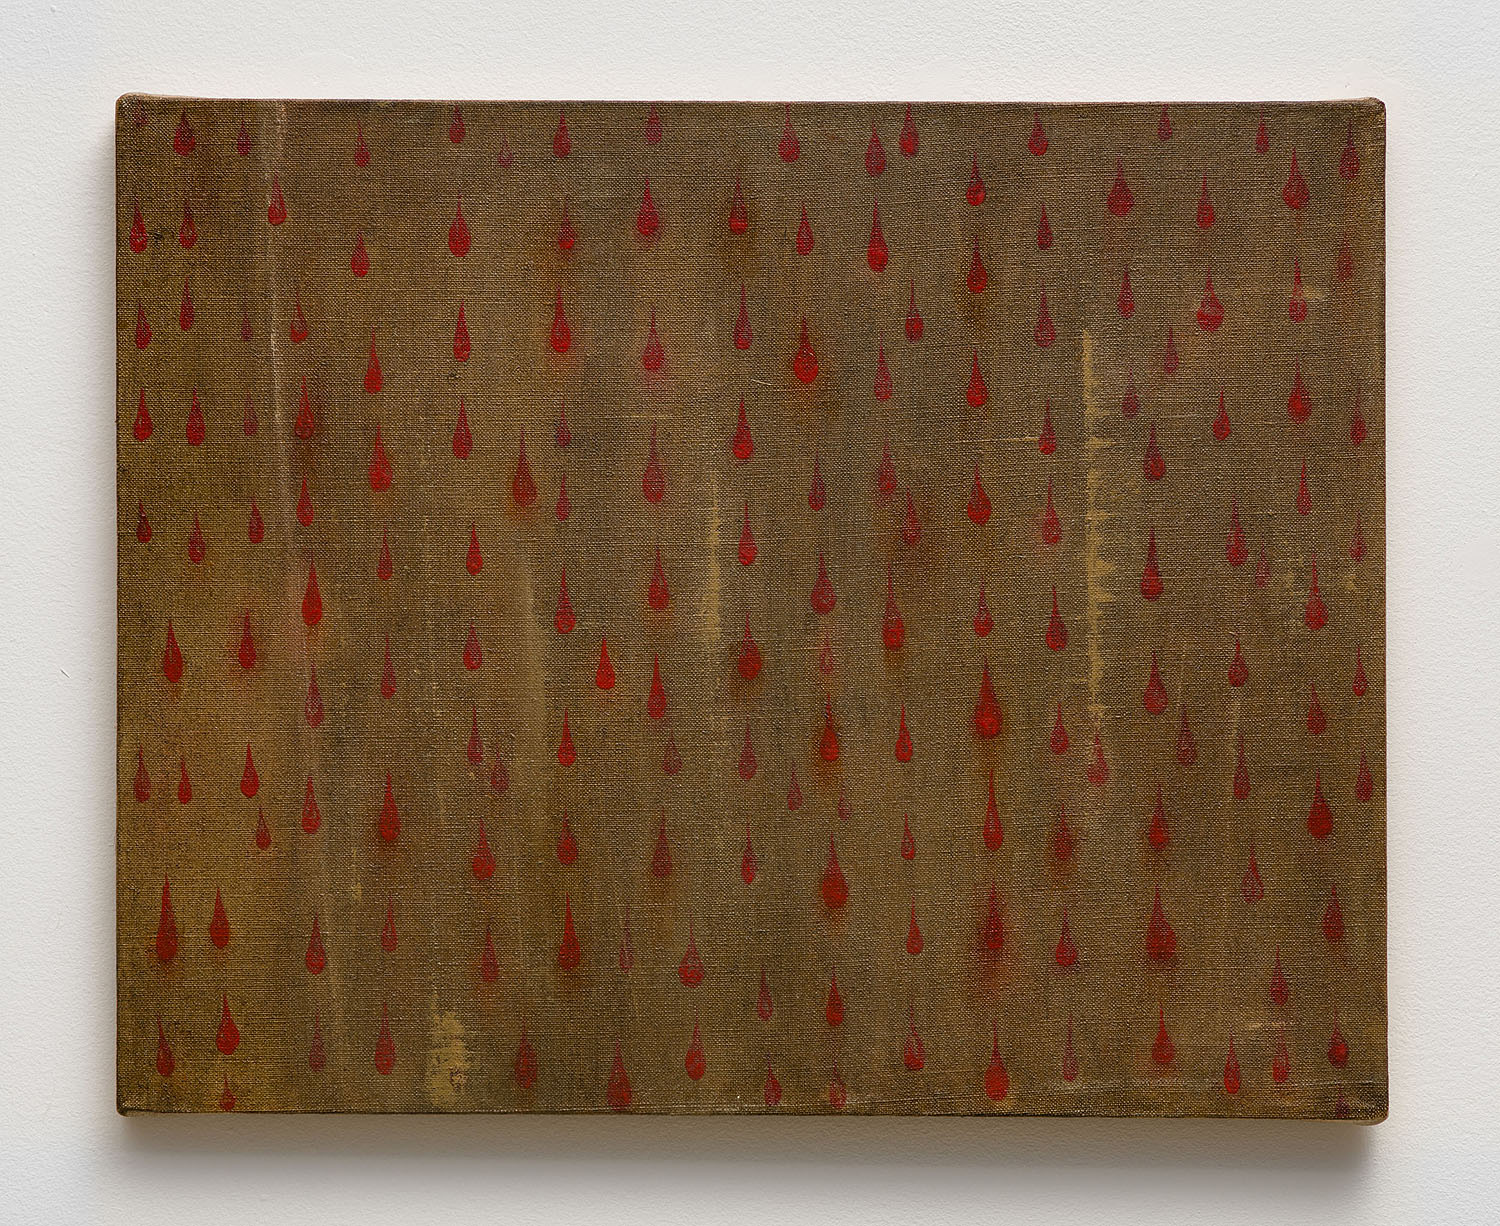 Mira Schor   Drops of Blood , 1989  Oil on linen  16 x 20 inches